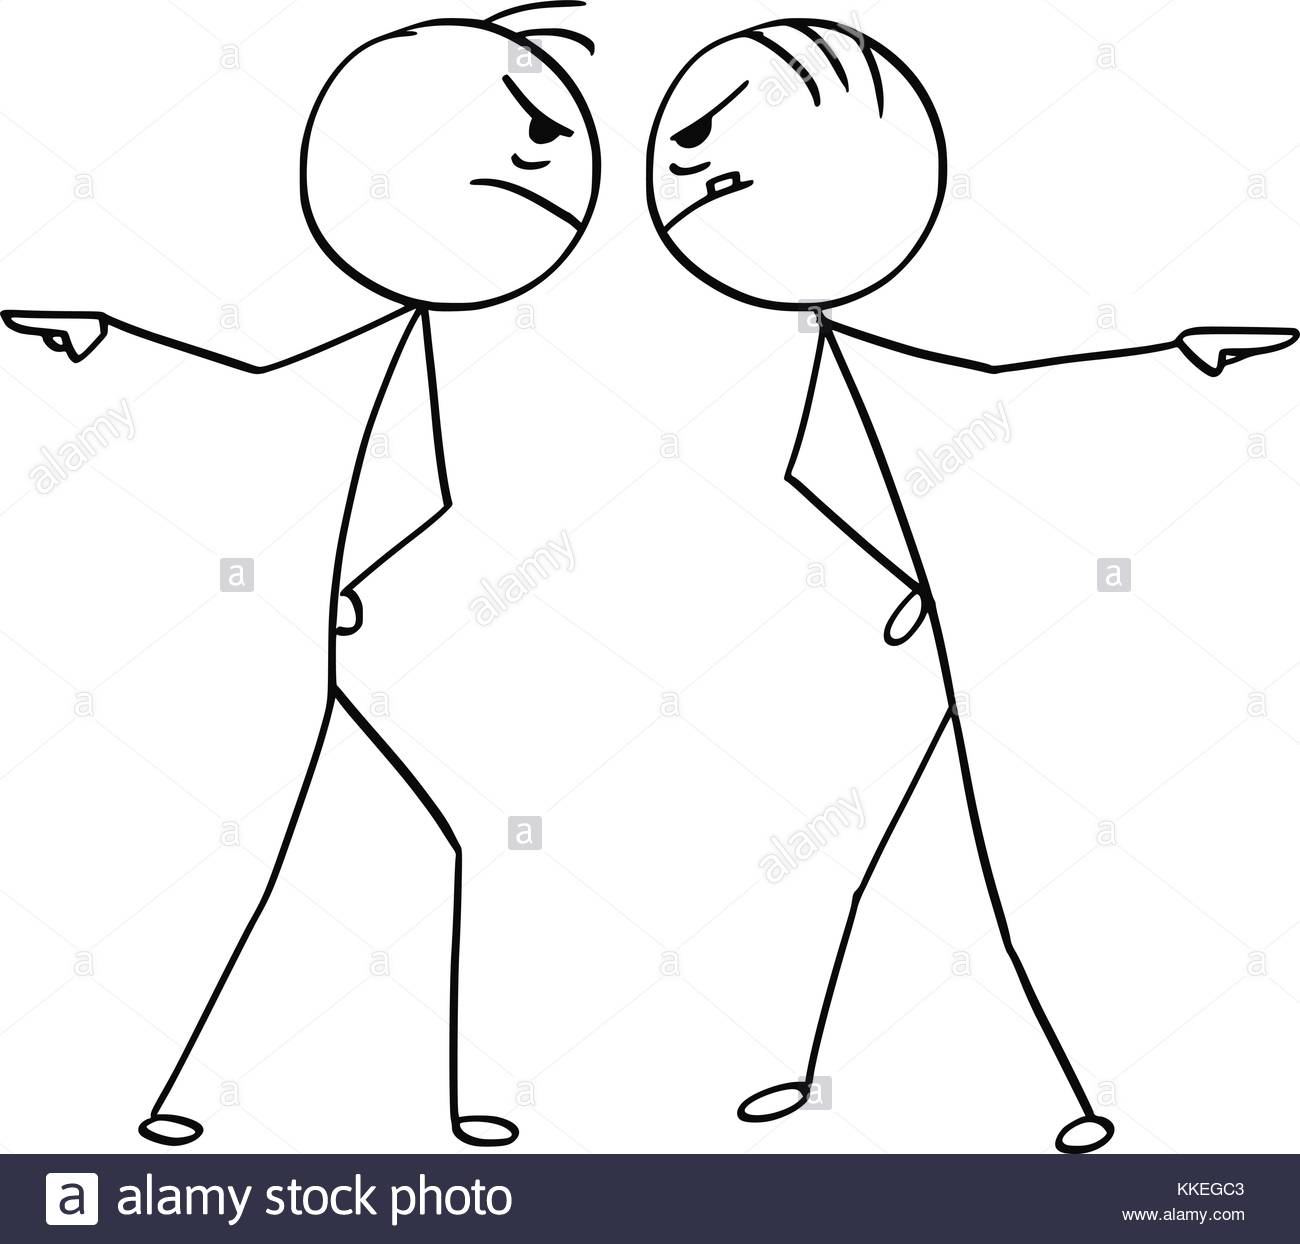 1300x1244 Cartoon Stick Man Drawing Illustration Of Two Angry Man Pointing